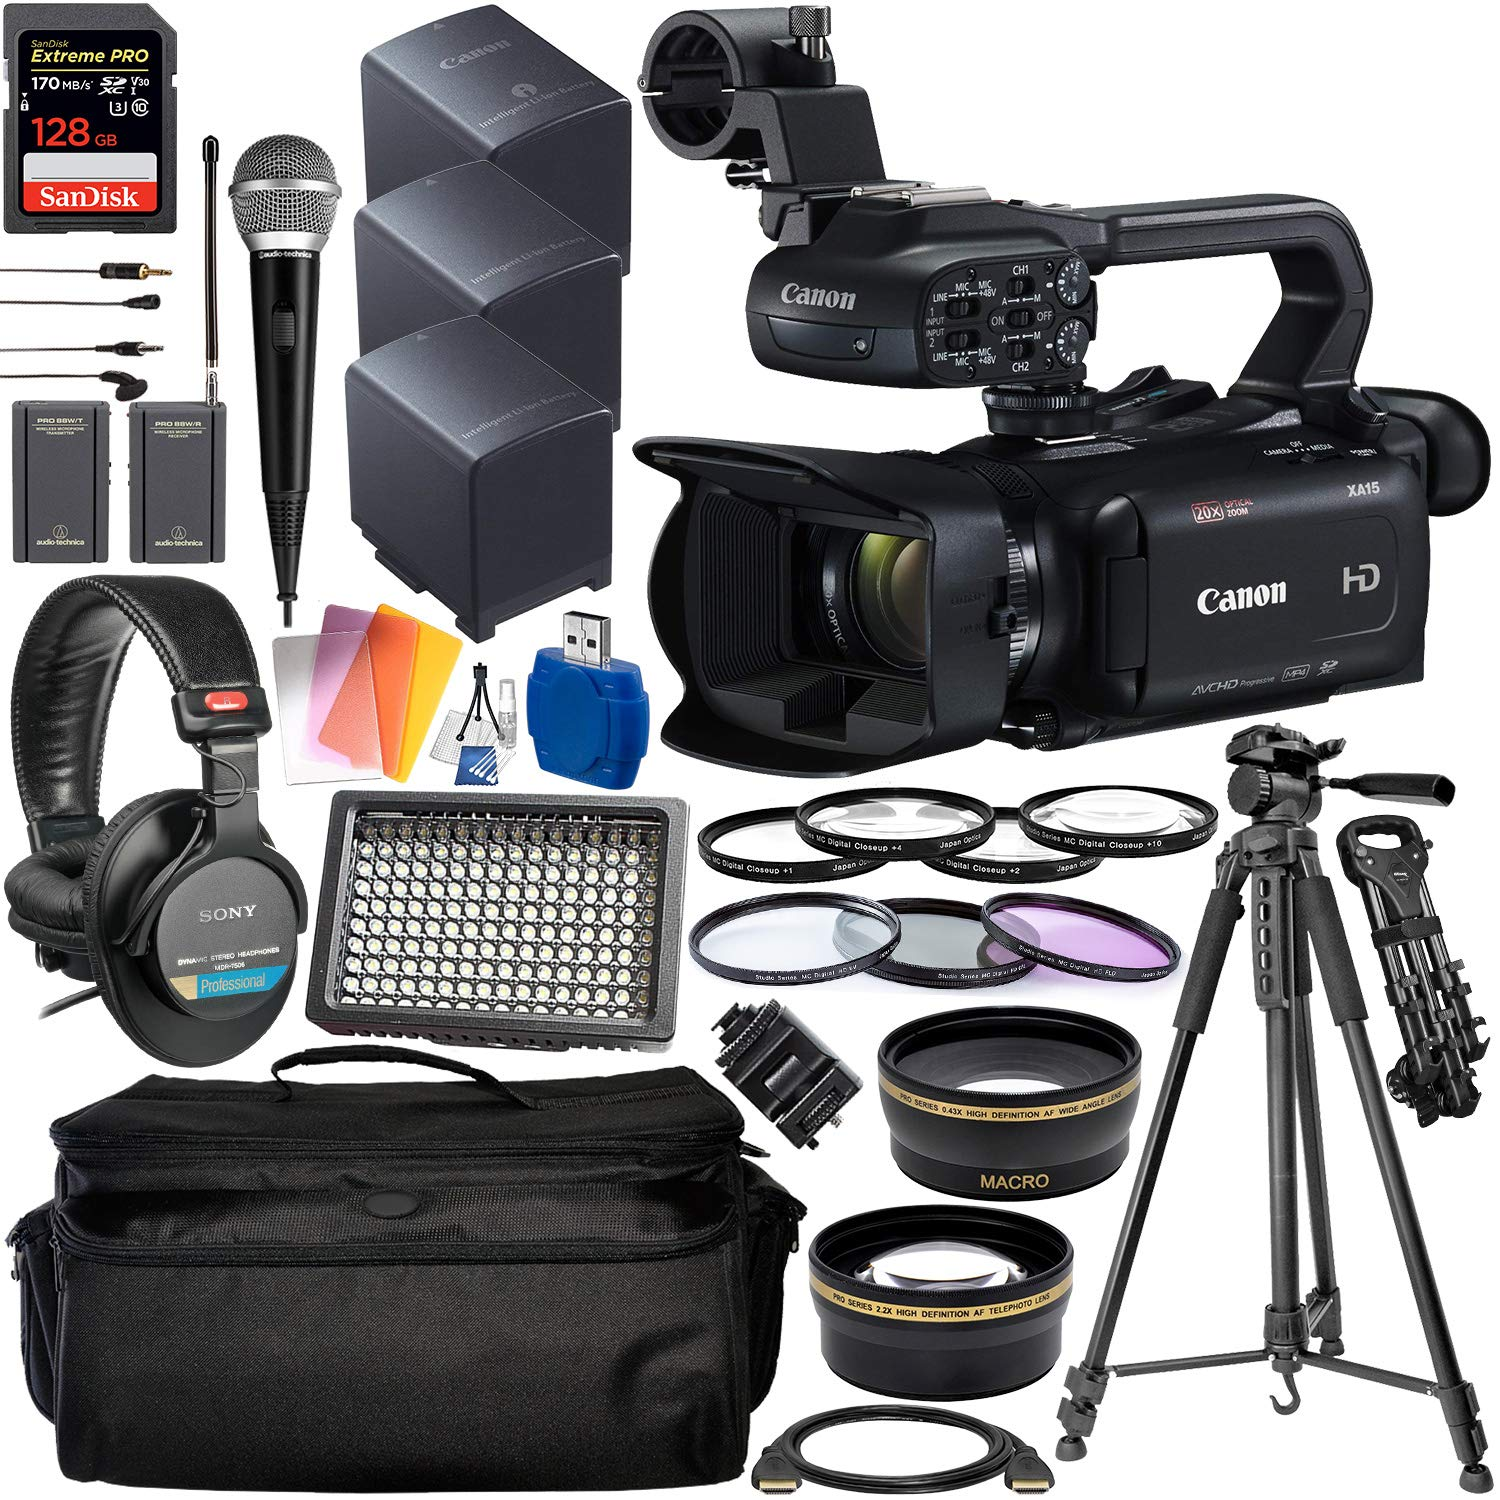 Canon XA15 Compact Full HD Camcorder with Deluxe Accessory Bundle - Includes: Audio-Technica VHF TwinMic System + Sony MDR-7506 Headphones + SanDisk Extreme PRO 128GB SD Card + More by Canon